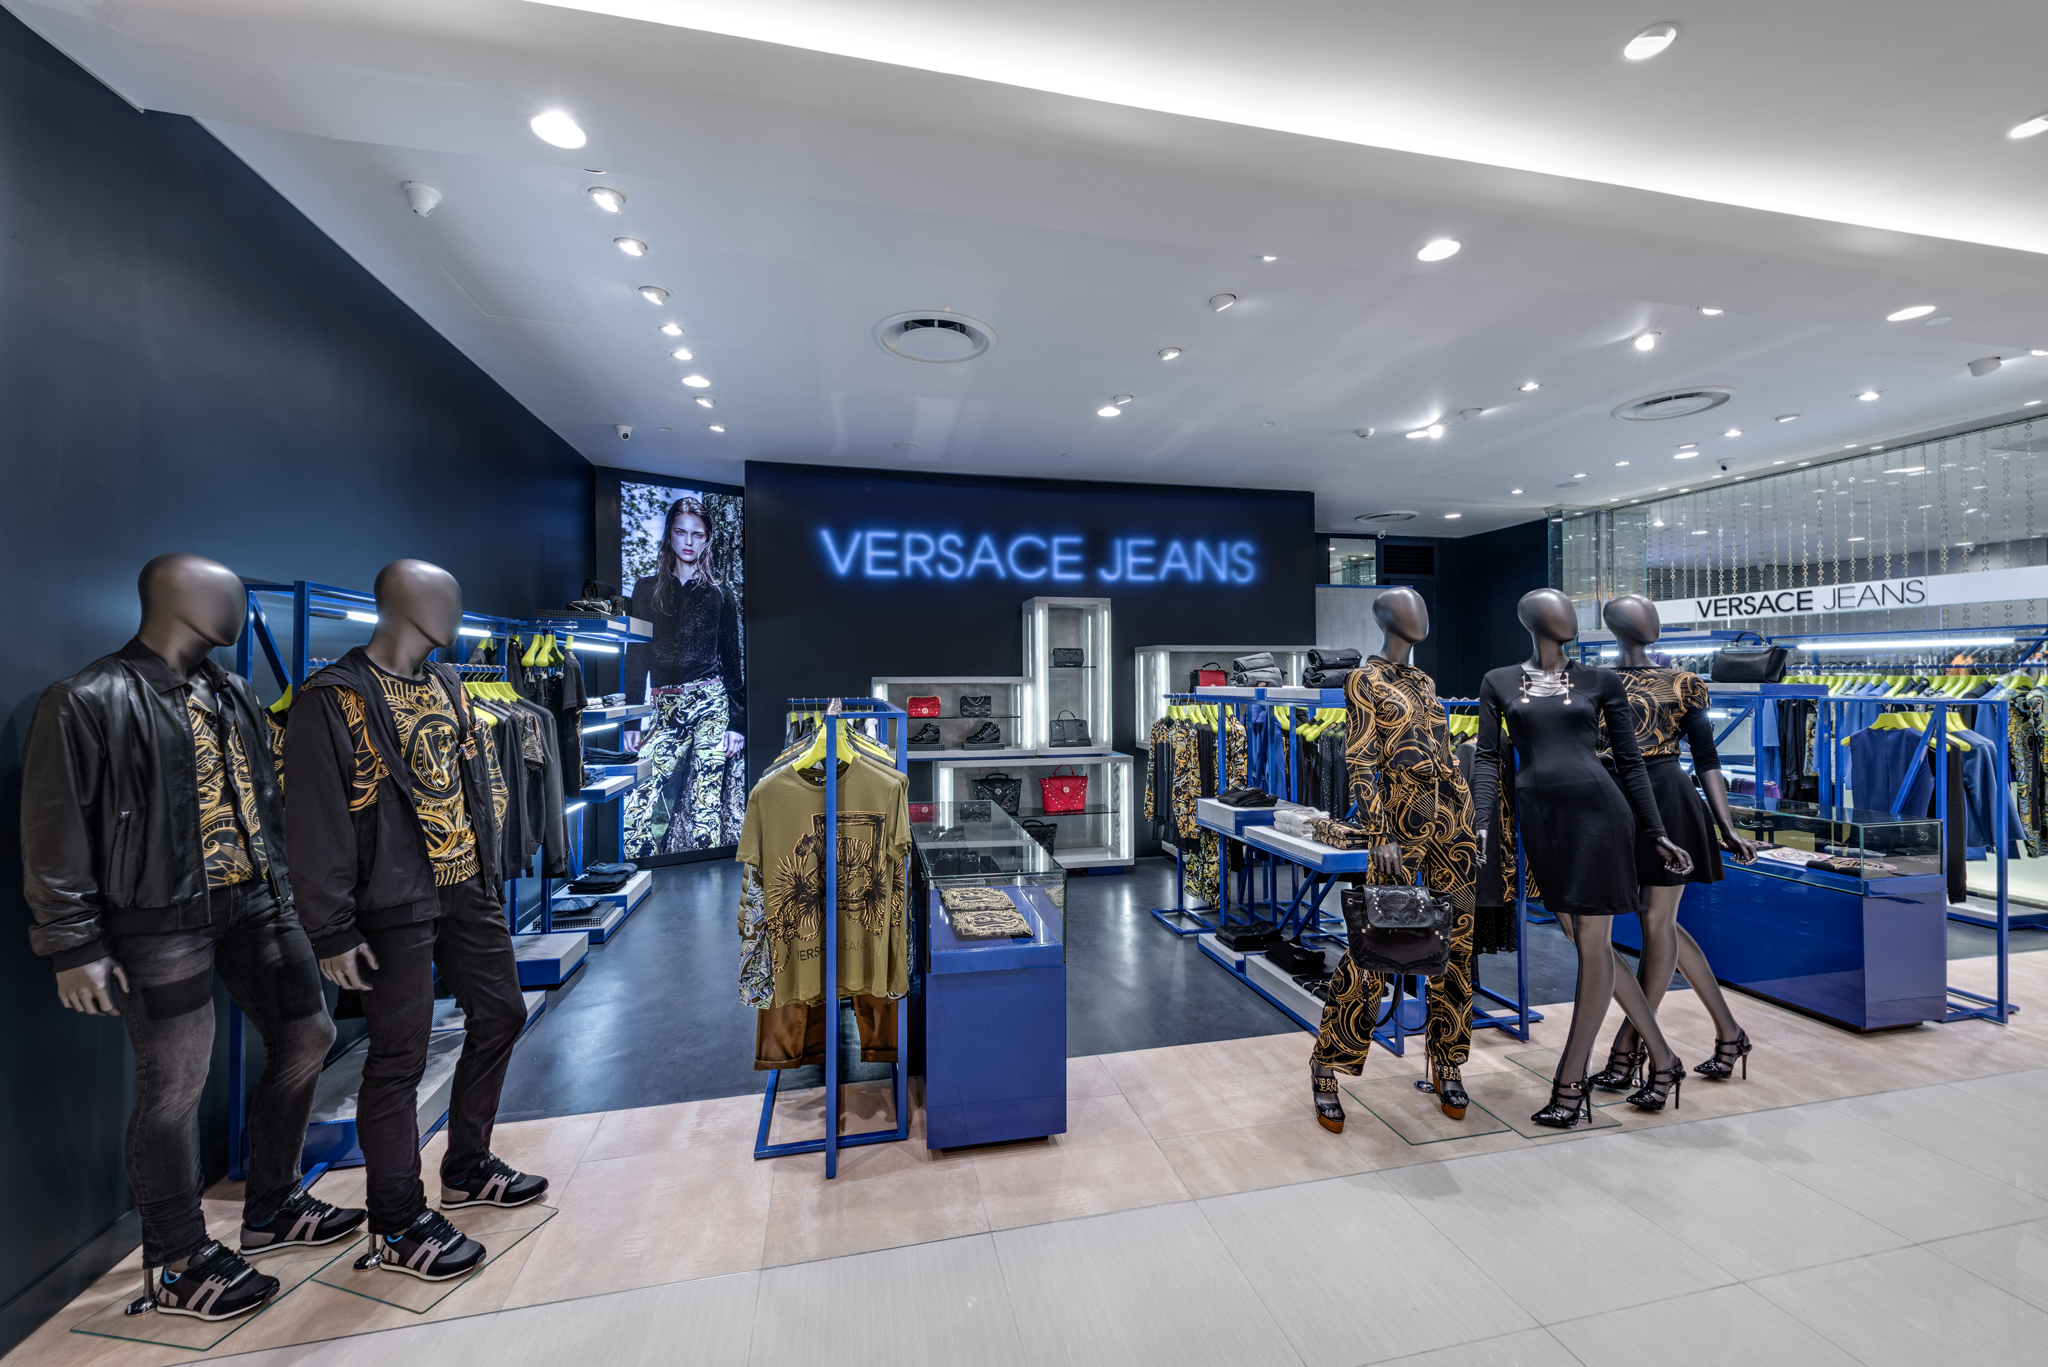 20160729 - Versace Jean - HCM - Commercial - Interior - Store - Retouch 0003.jpg